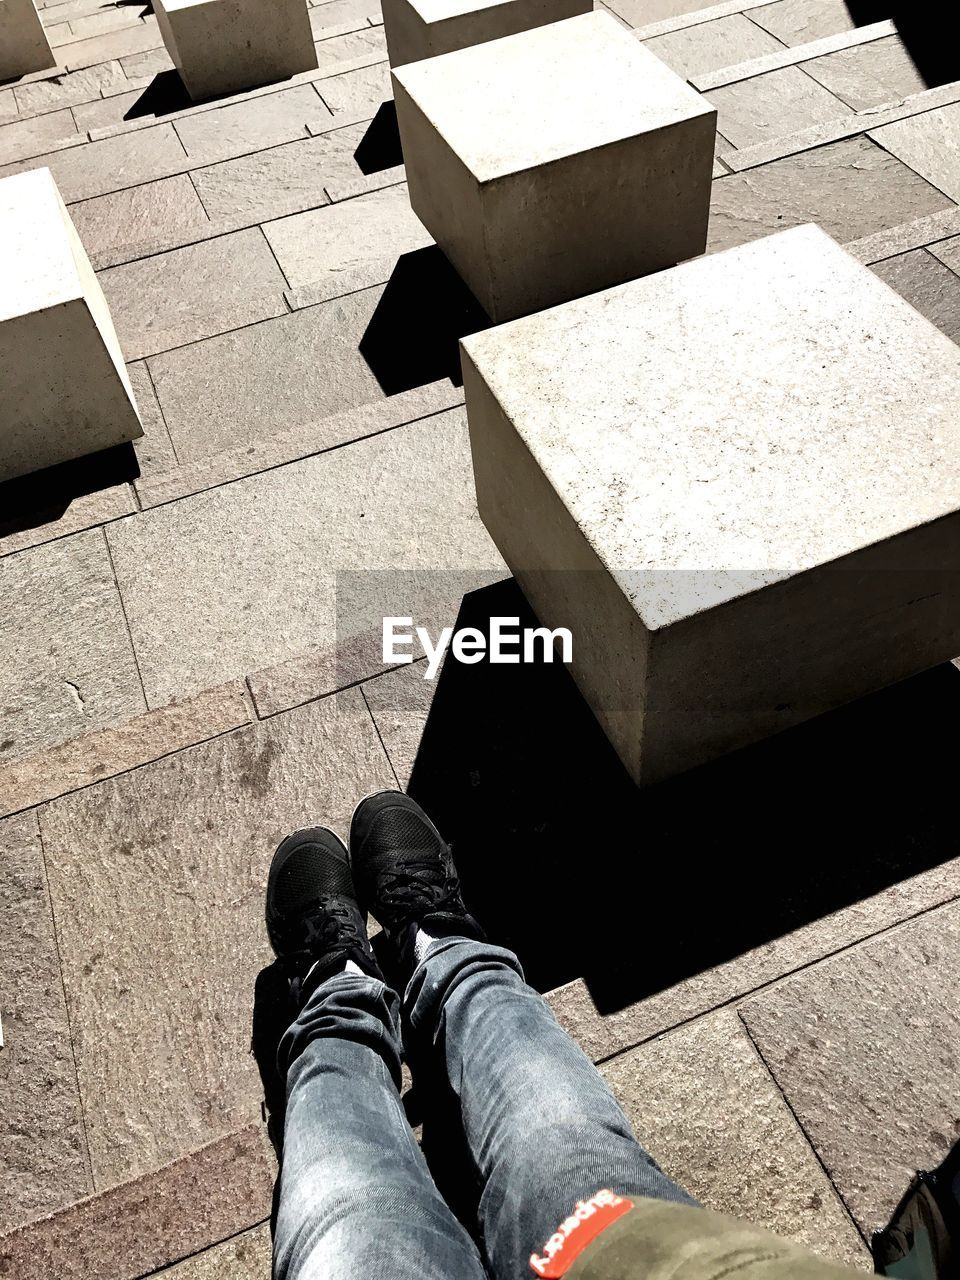 human leg, day, shoe, personal perspective, low section, one person, outdoors, real people, high angle view, human body part, men